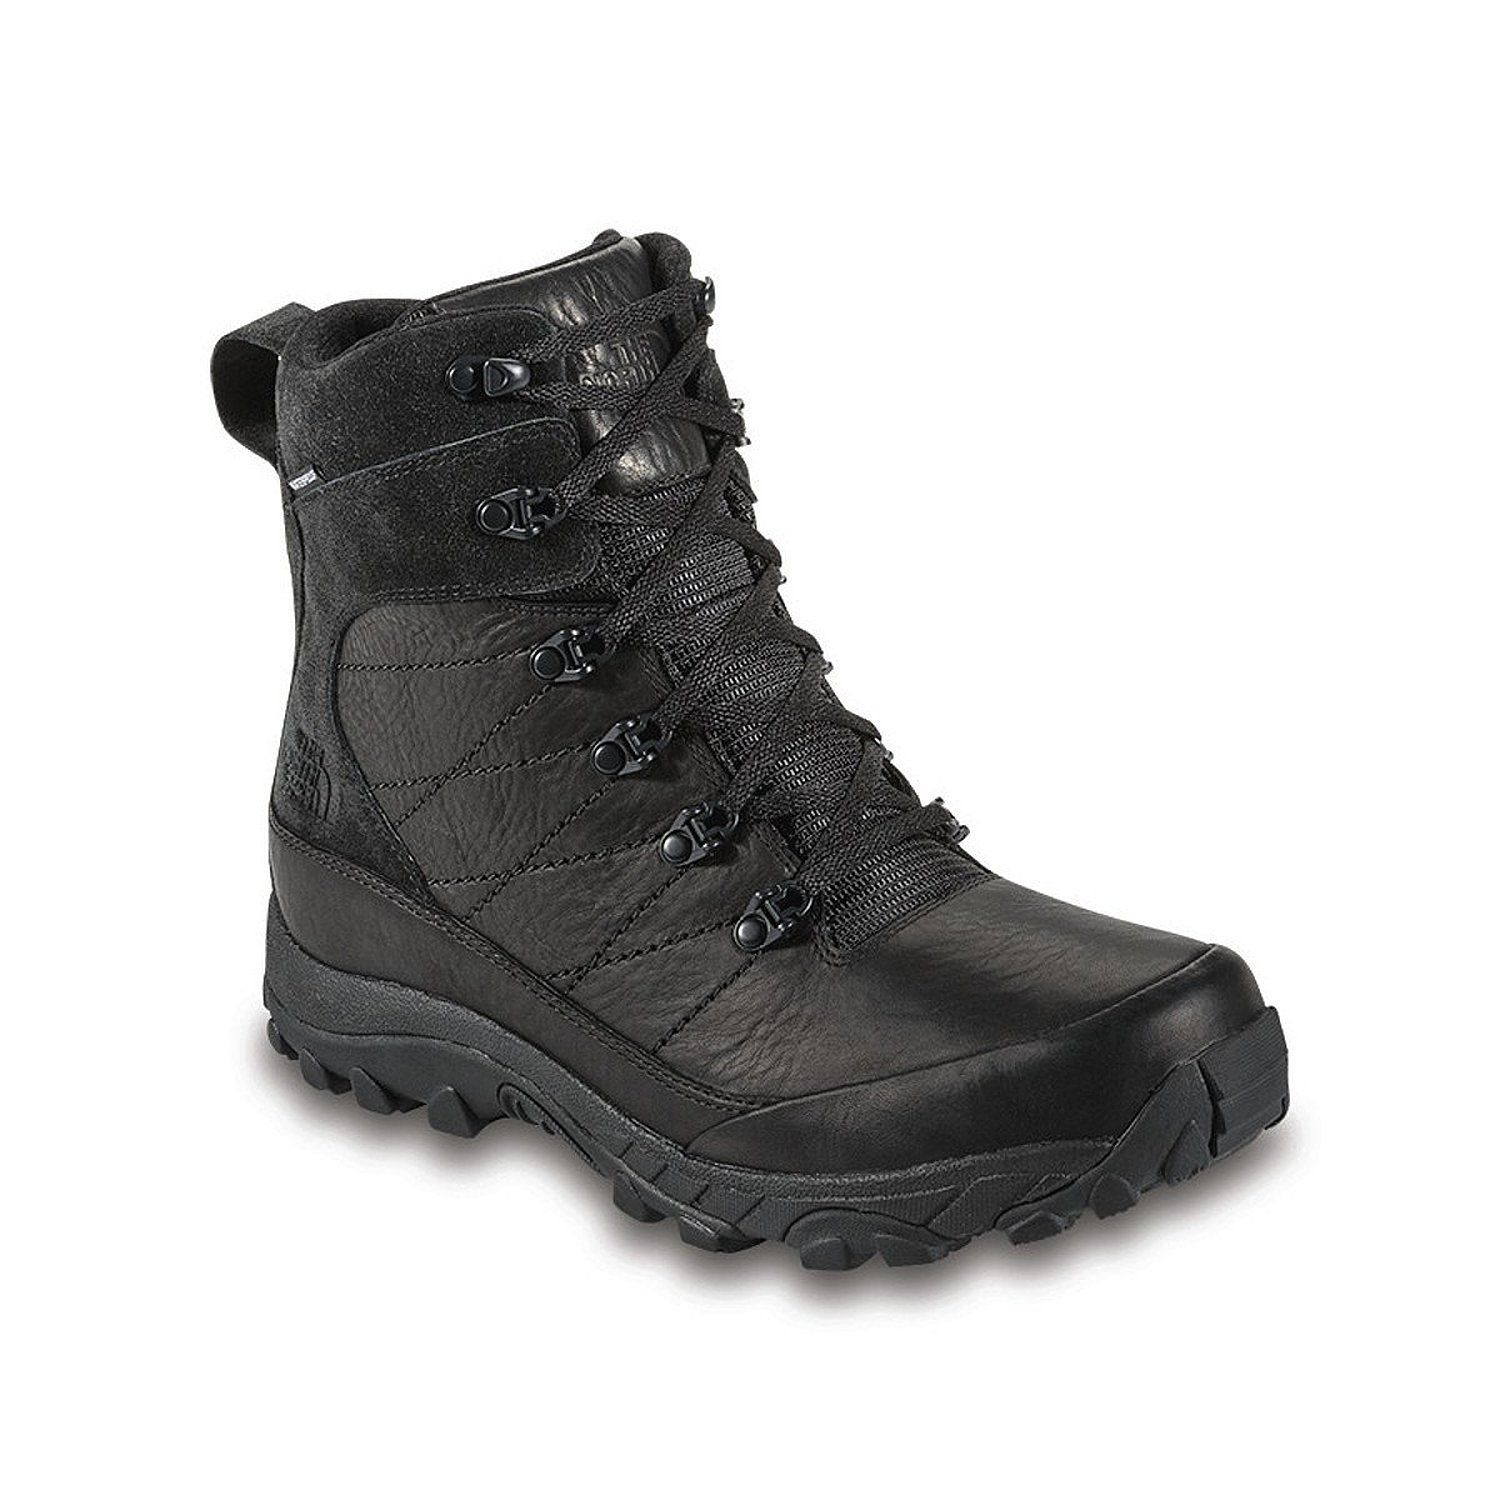 THE NORTH FACE CHILKAT LEATHER TNF BLACK/TNF BLACK MENS ALL-PURPOSE BOOTS  Size